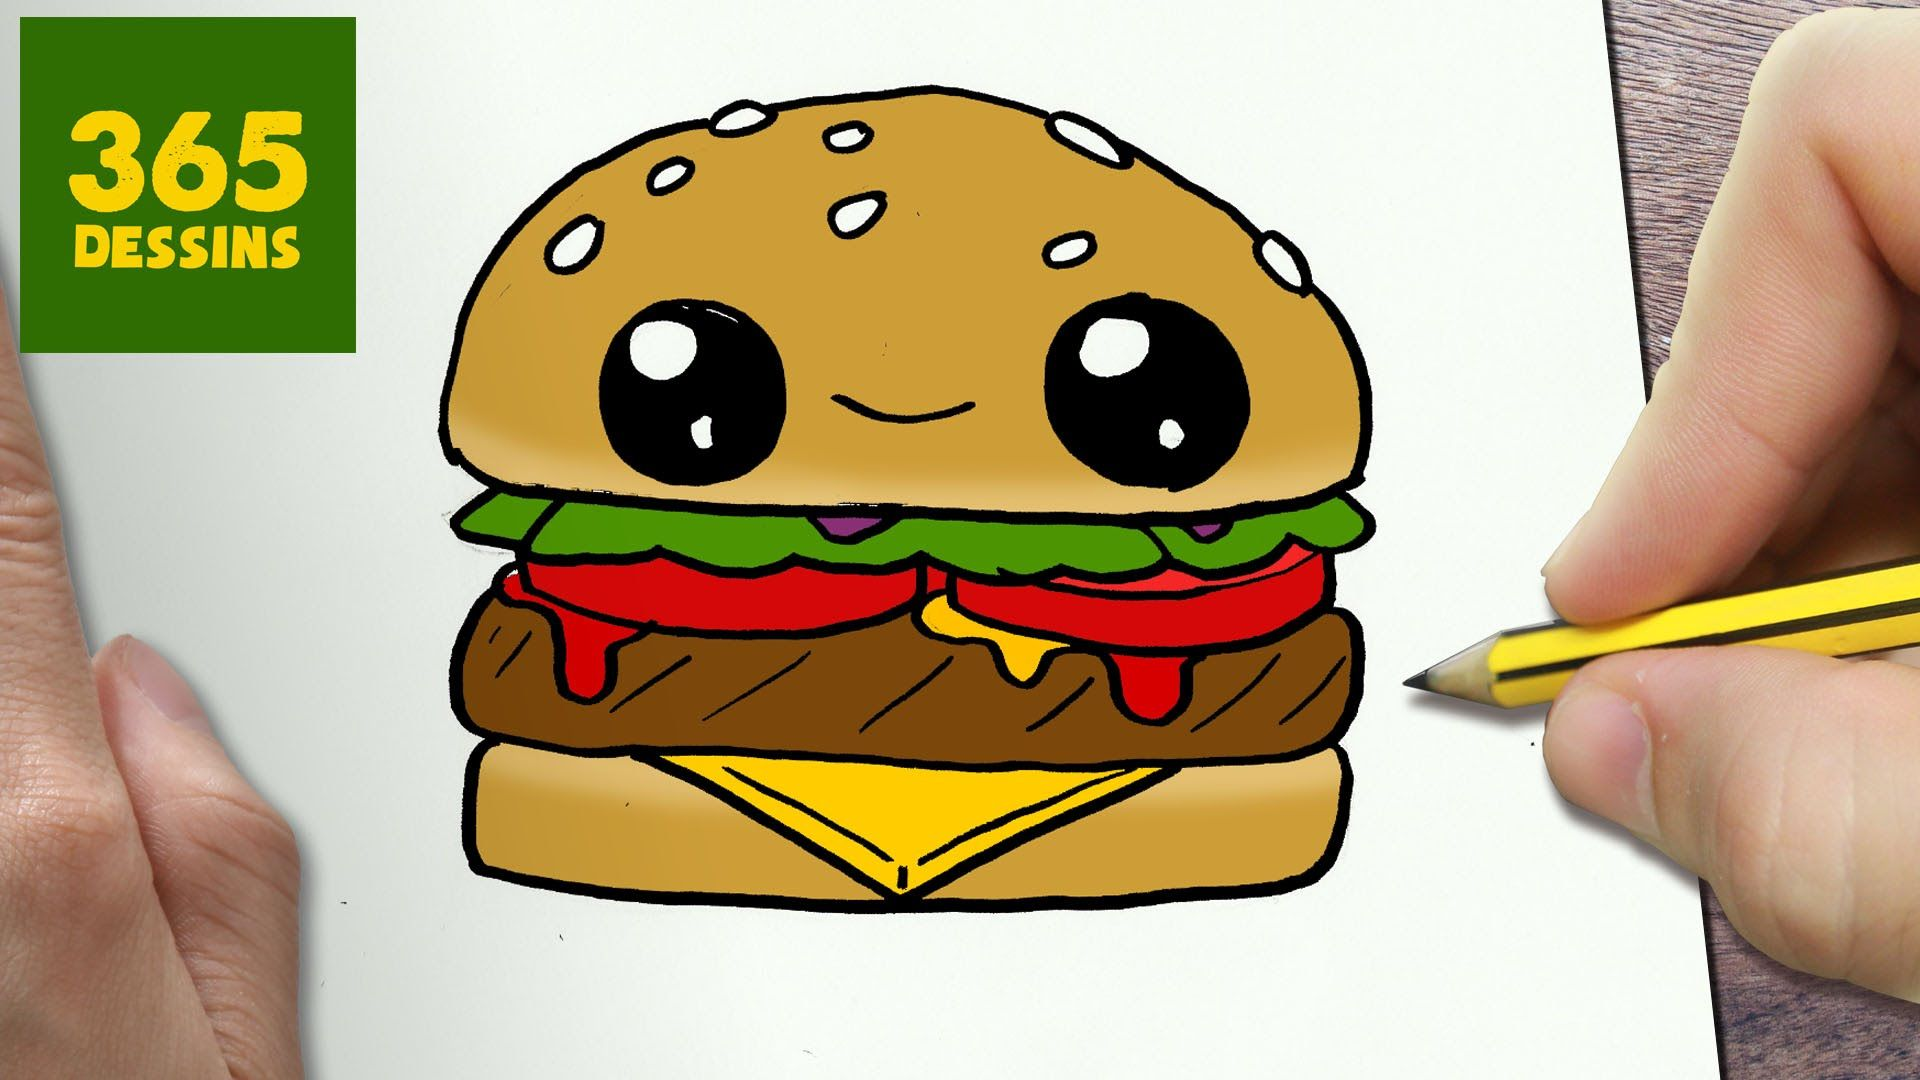 Comment Dessiner Hamburger Kawaii étape Par étape Dessins